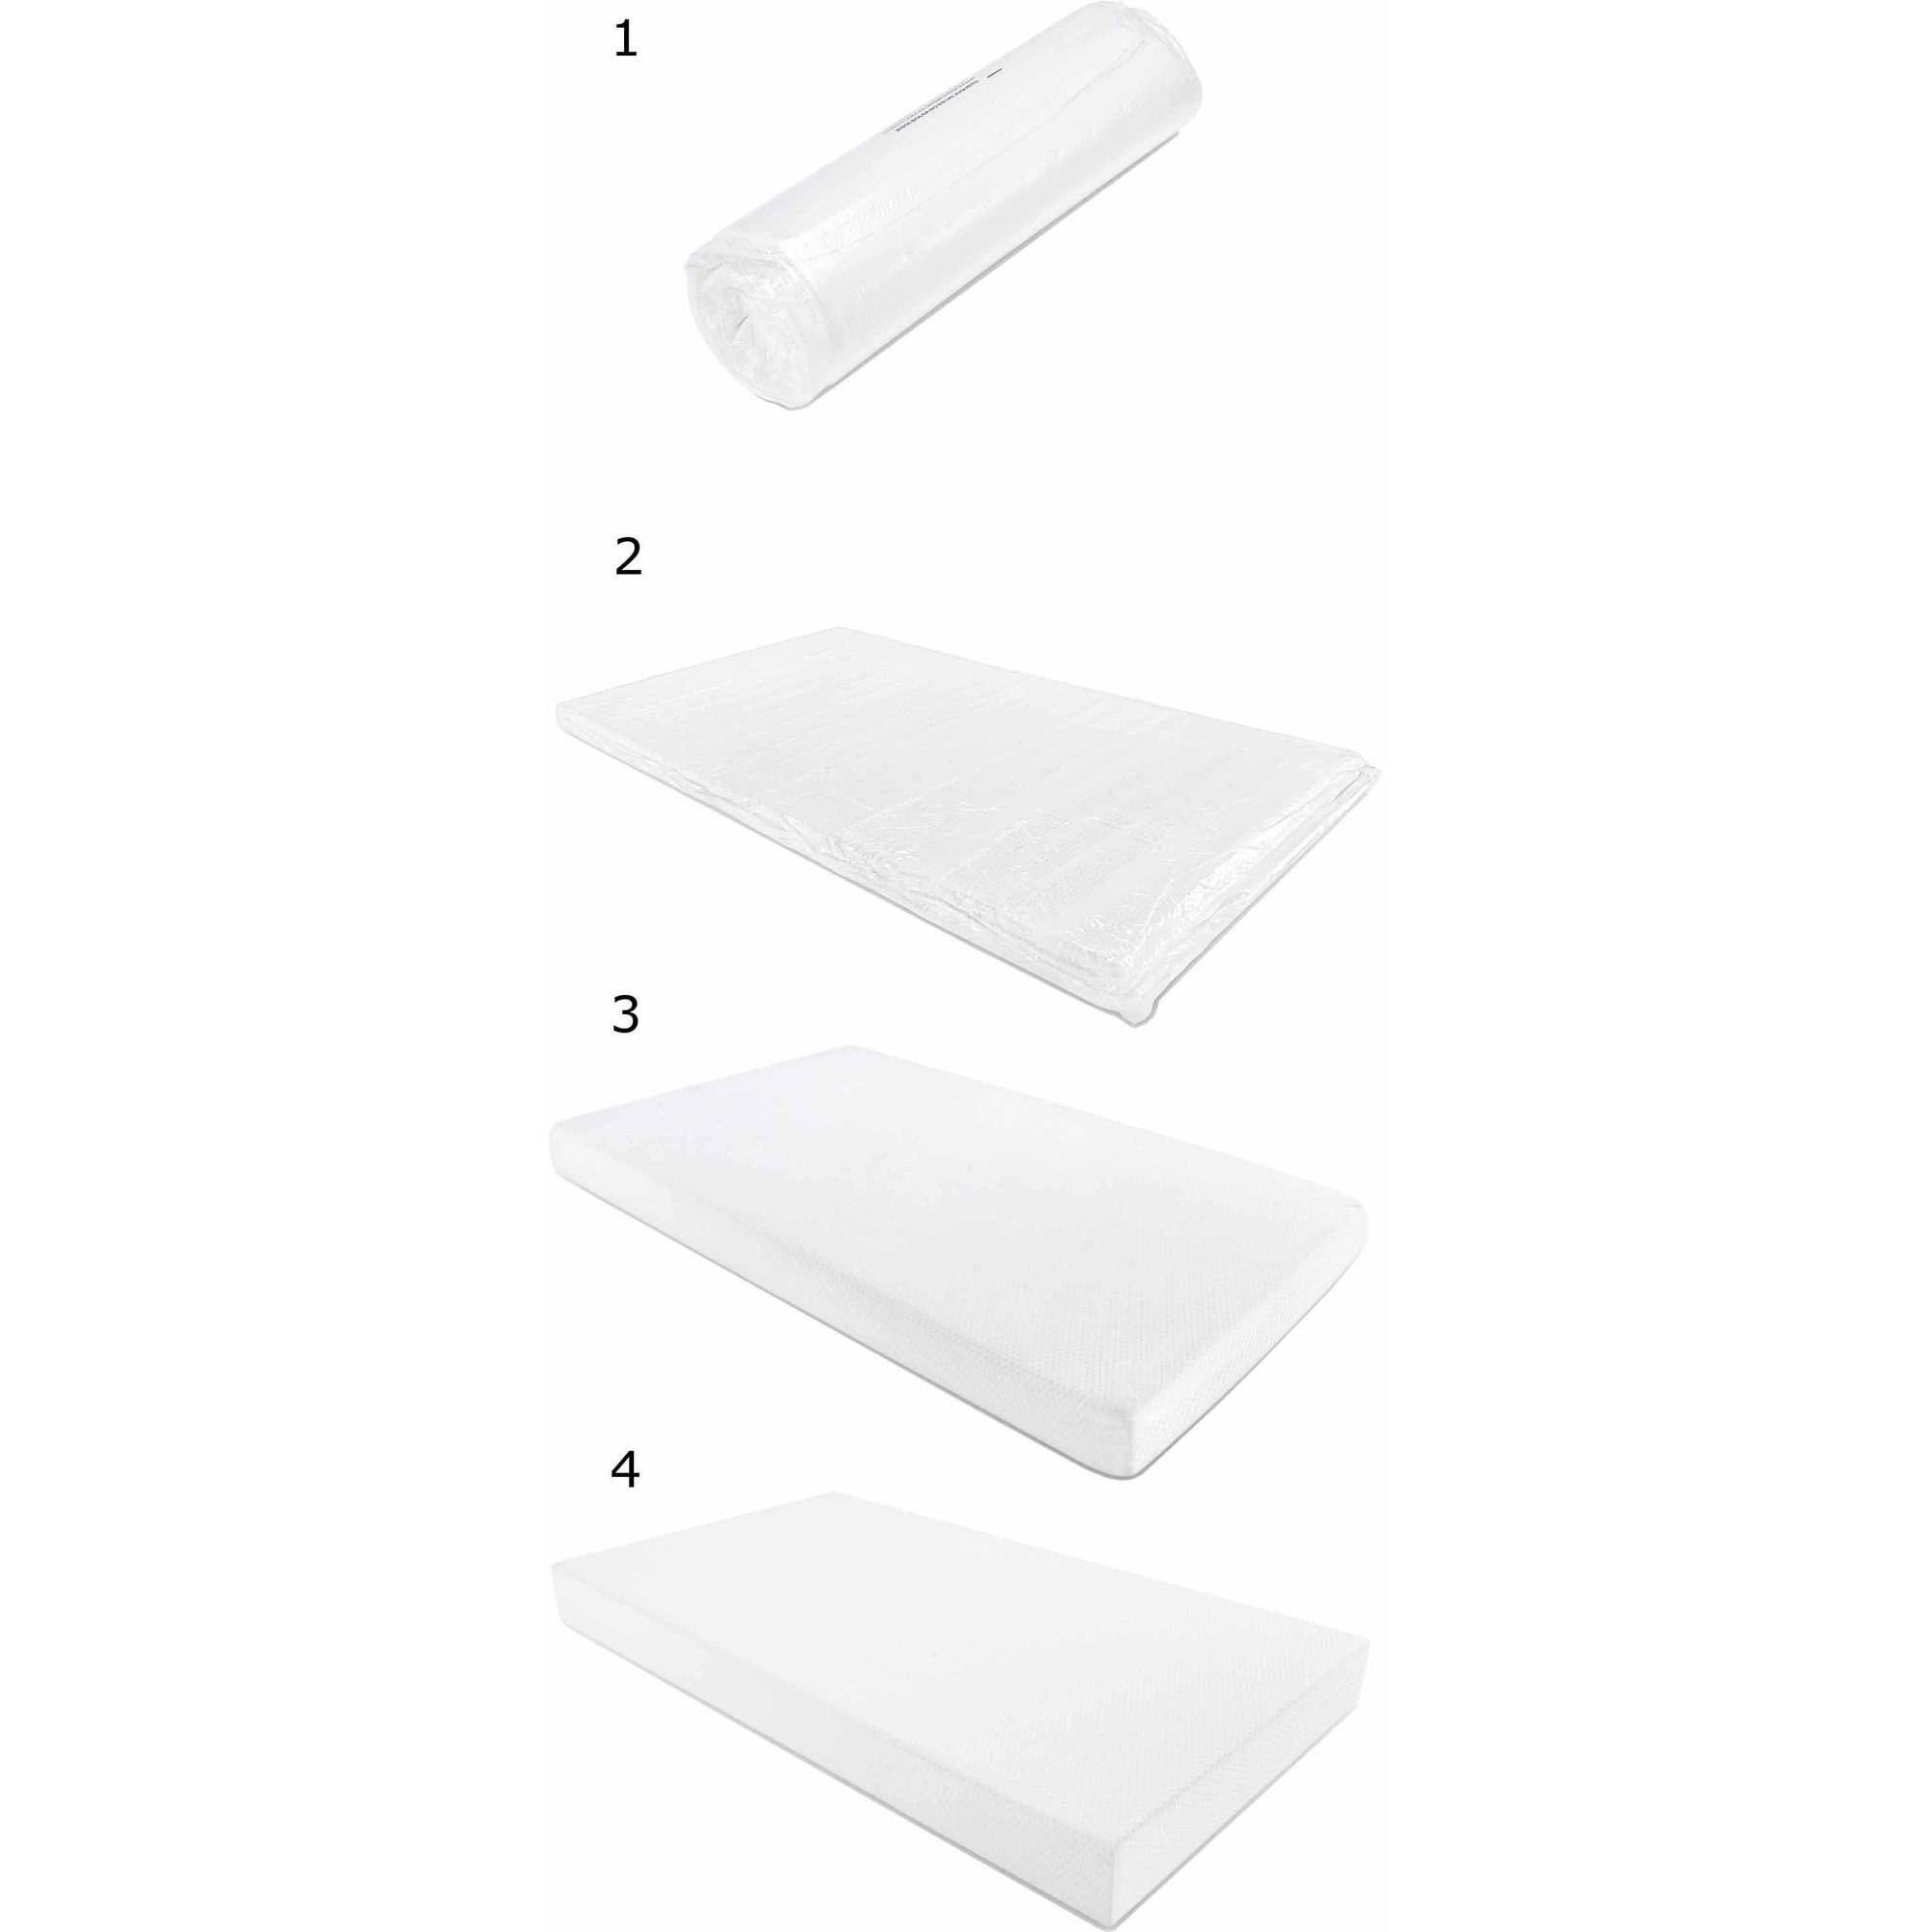 cribs first waterproof ip cover my crib removable baby walmart plush memory com foam hypoallergenic mattress size